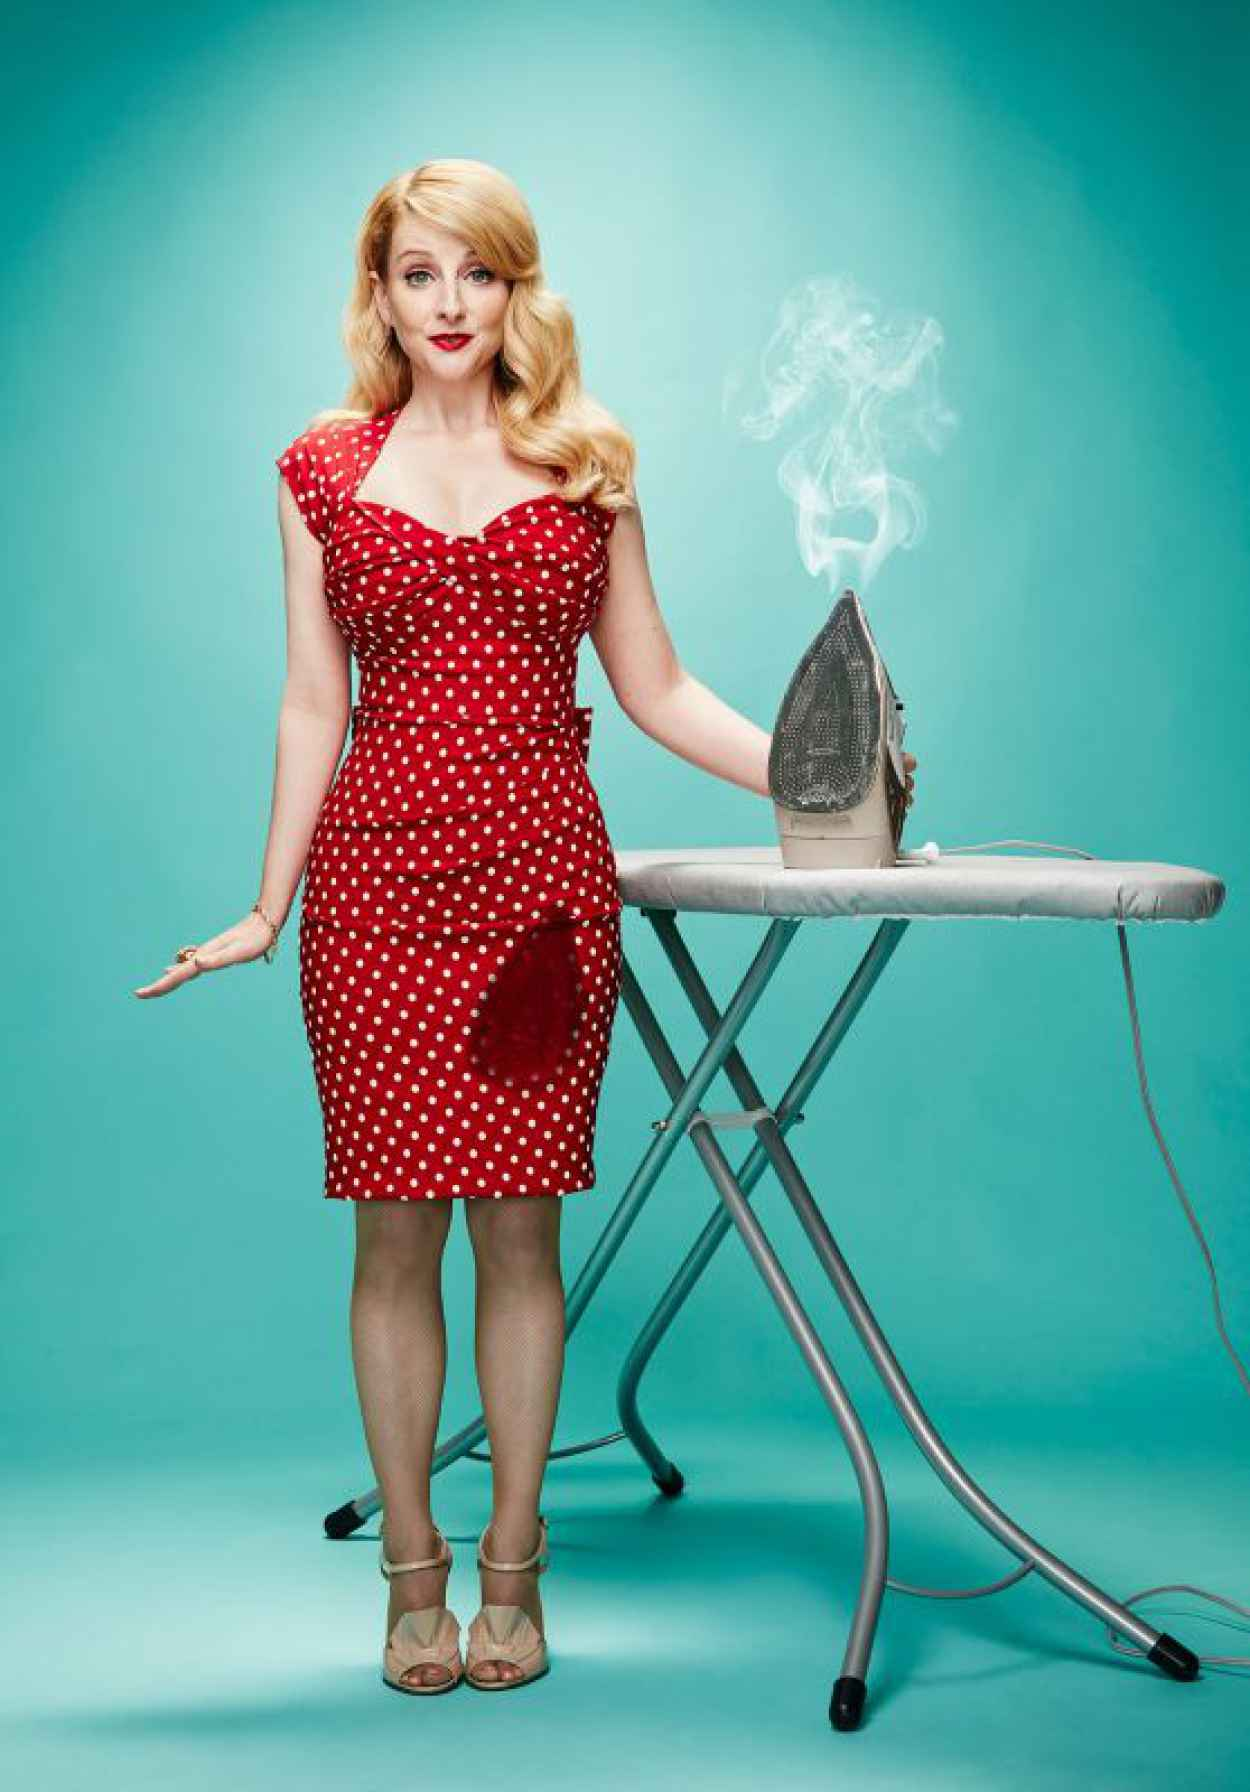 Melissa Rauch - The Stndrd Magazine Issue #8 (More Pics), October 2015-1